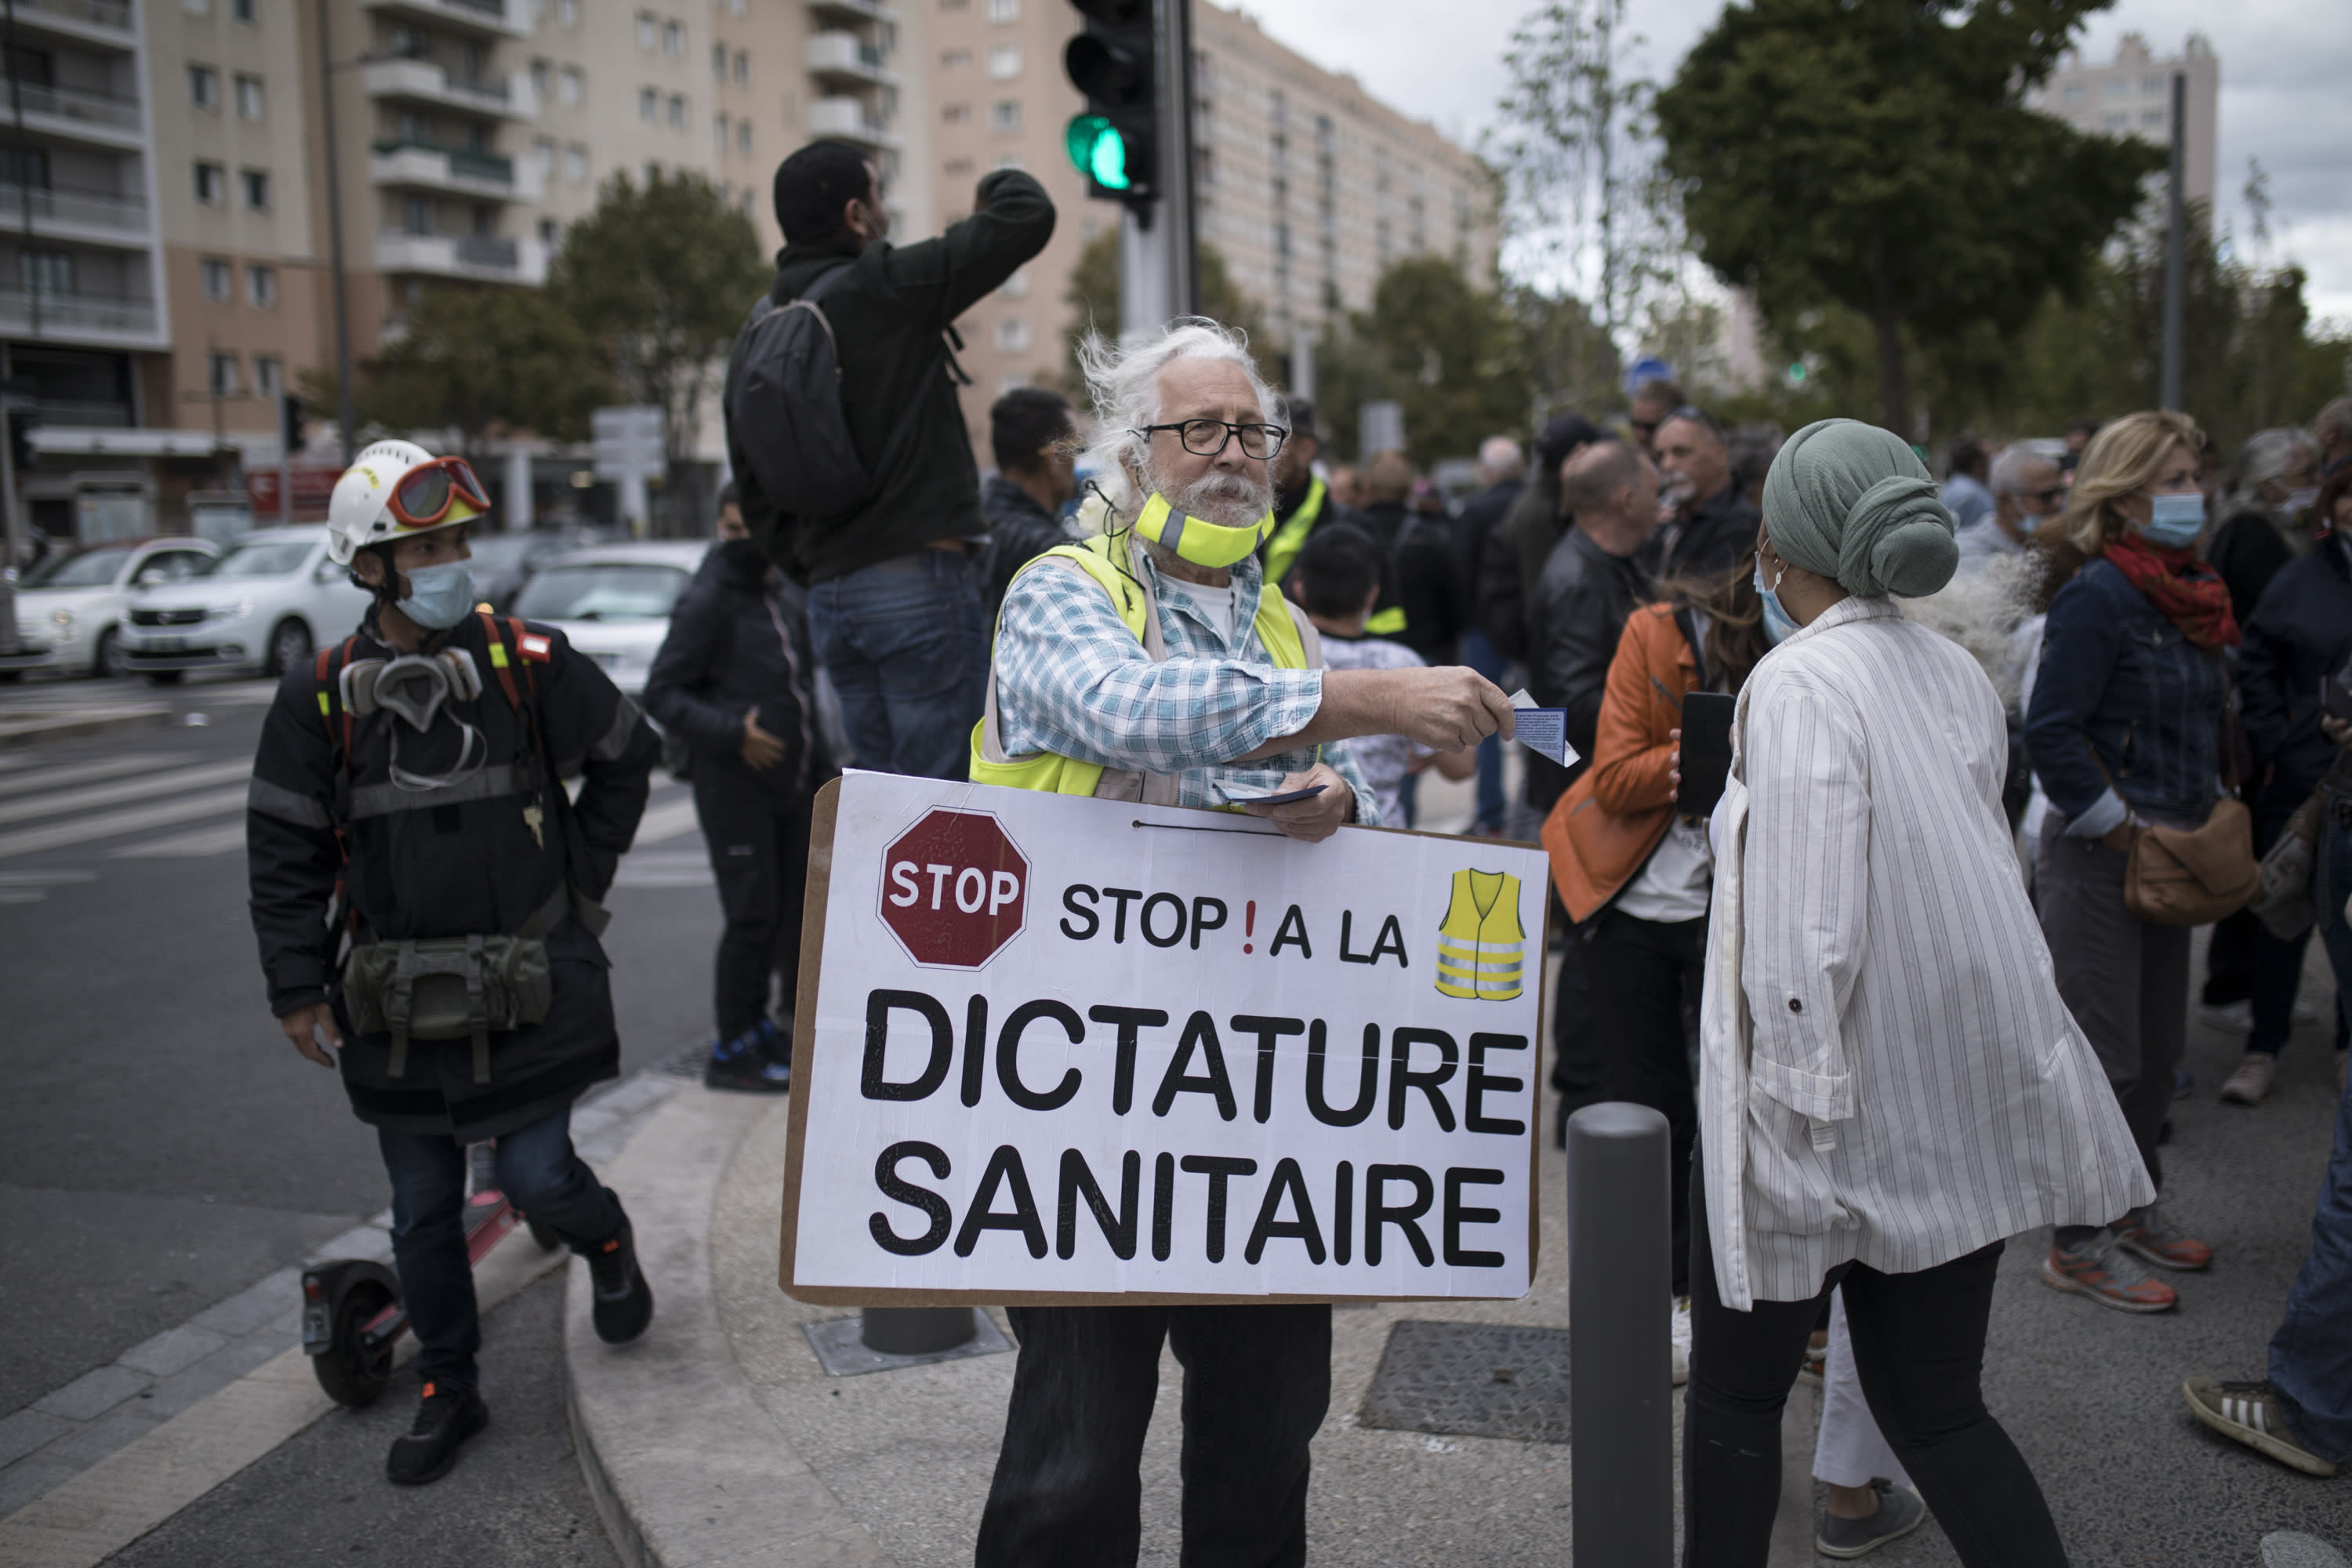 """A man wears a sign reading """"stop the health dictatorship"""" outside the gates of La Timone public hospital as French Health Minister Olivier Veran visits in Marseille, southern France, Friday Sept. 25, 2020. Angry restaurant and bar owners demonstrated in Marseille to challenge a French government order to close all public venues as of Saturday to battle resurgent virus infections. The government argues that hospitals in this Mediterranean city are under strain and the closures are the only way to stem the spread while avoiding new lockdowns. (AP Photo/Daniel Cole)"""